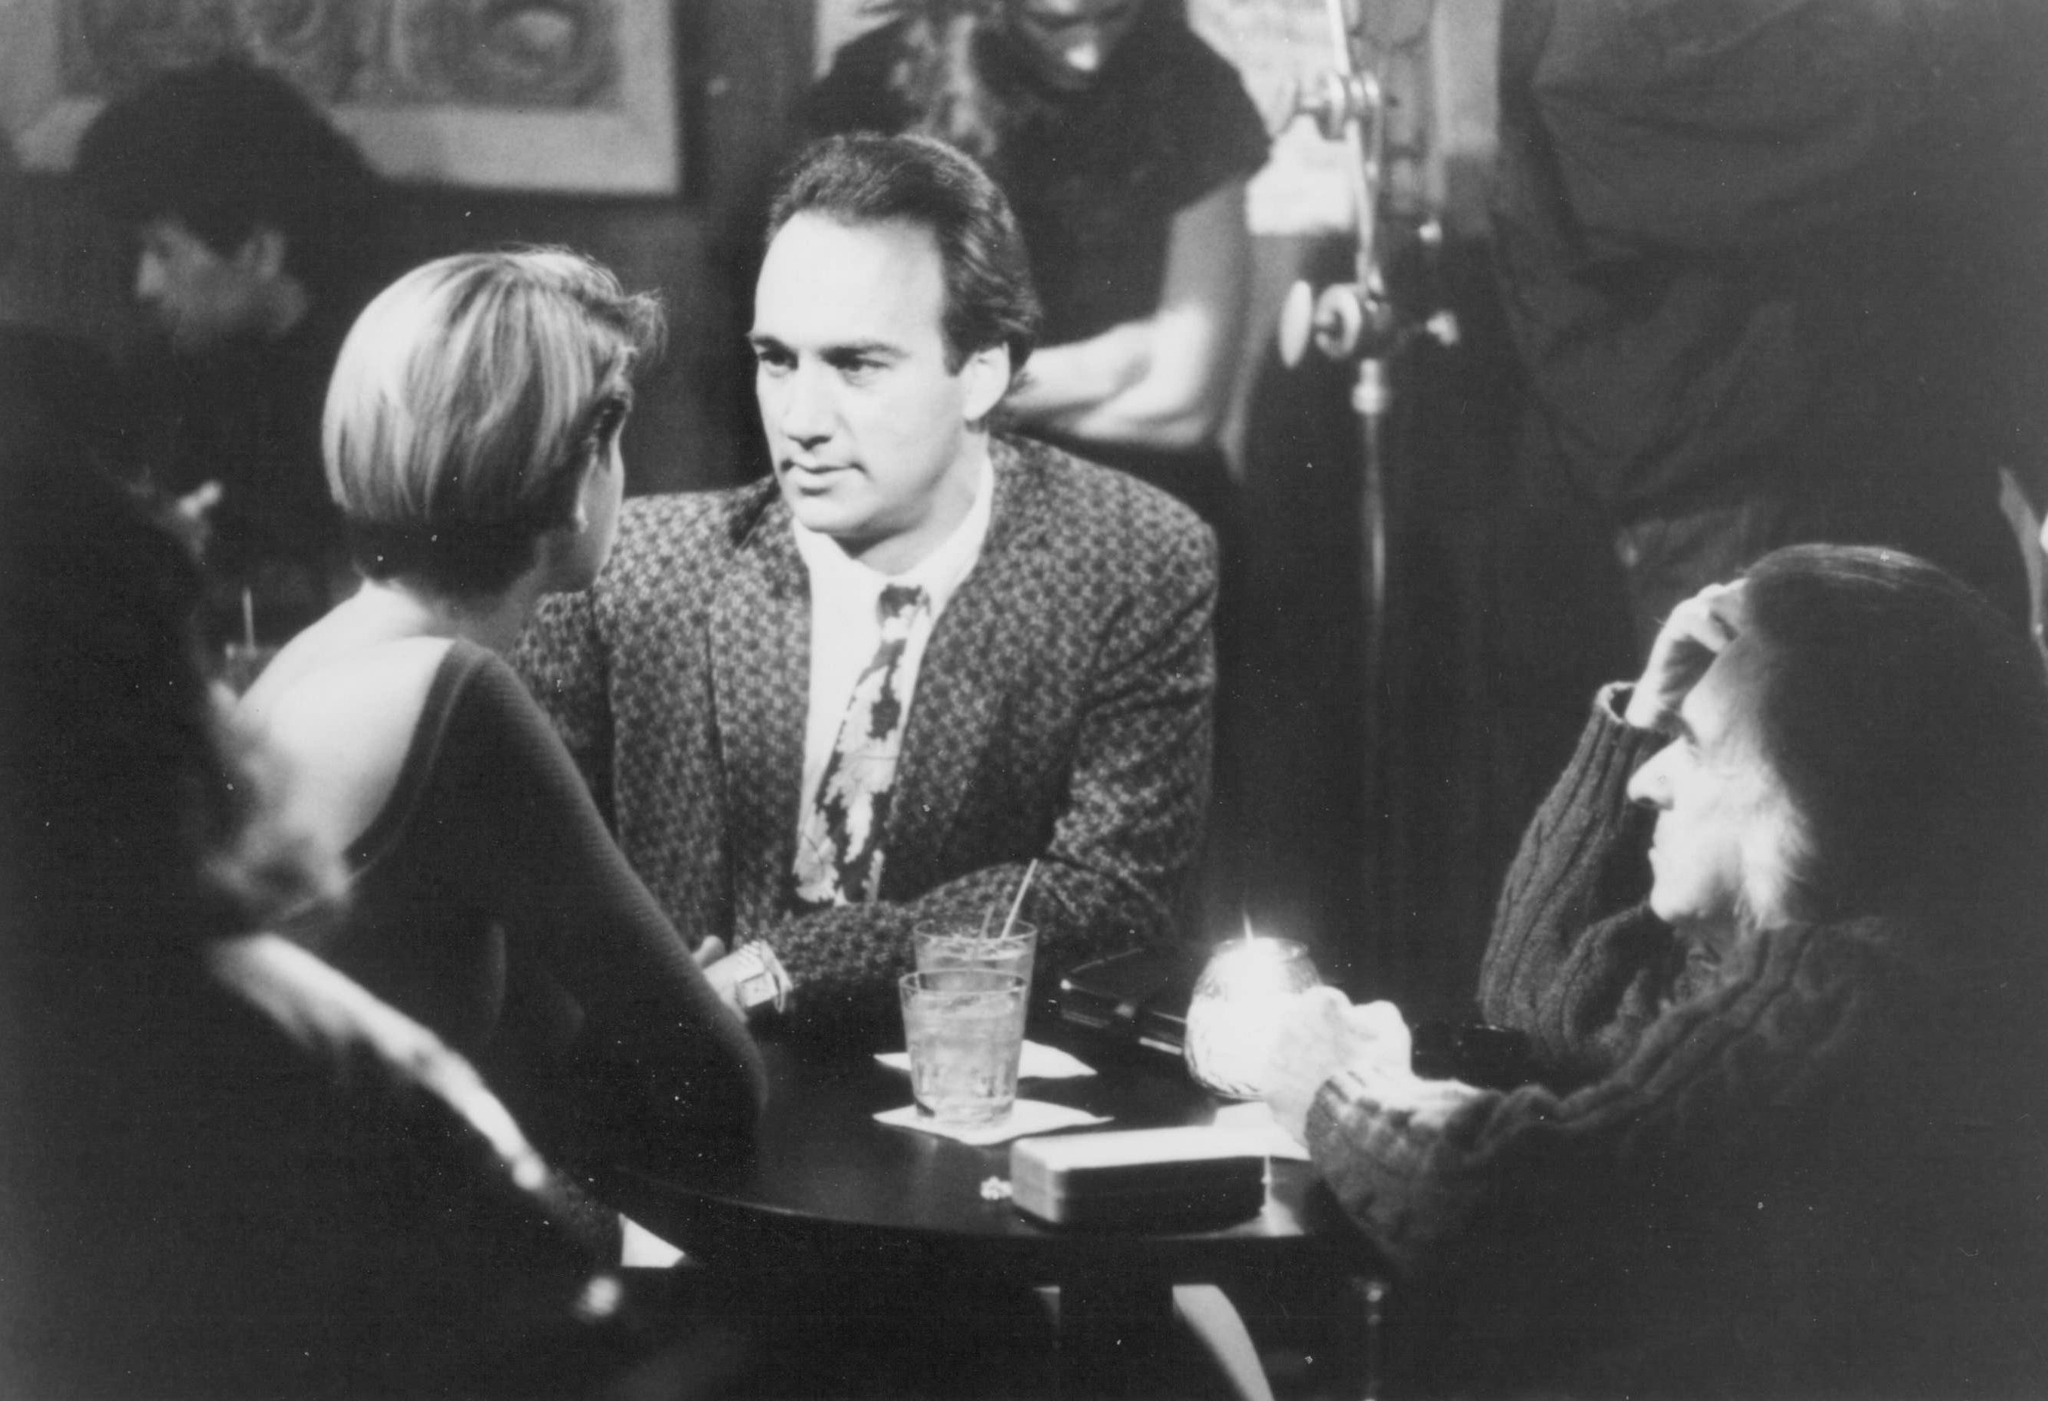 Jim Belushi, Arthur Hiller, and Loryn Locklin in Taking Care of Business (1990)